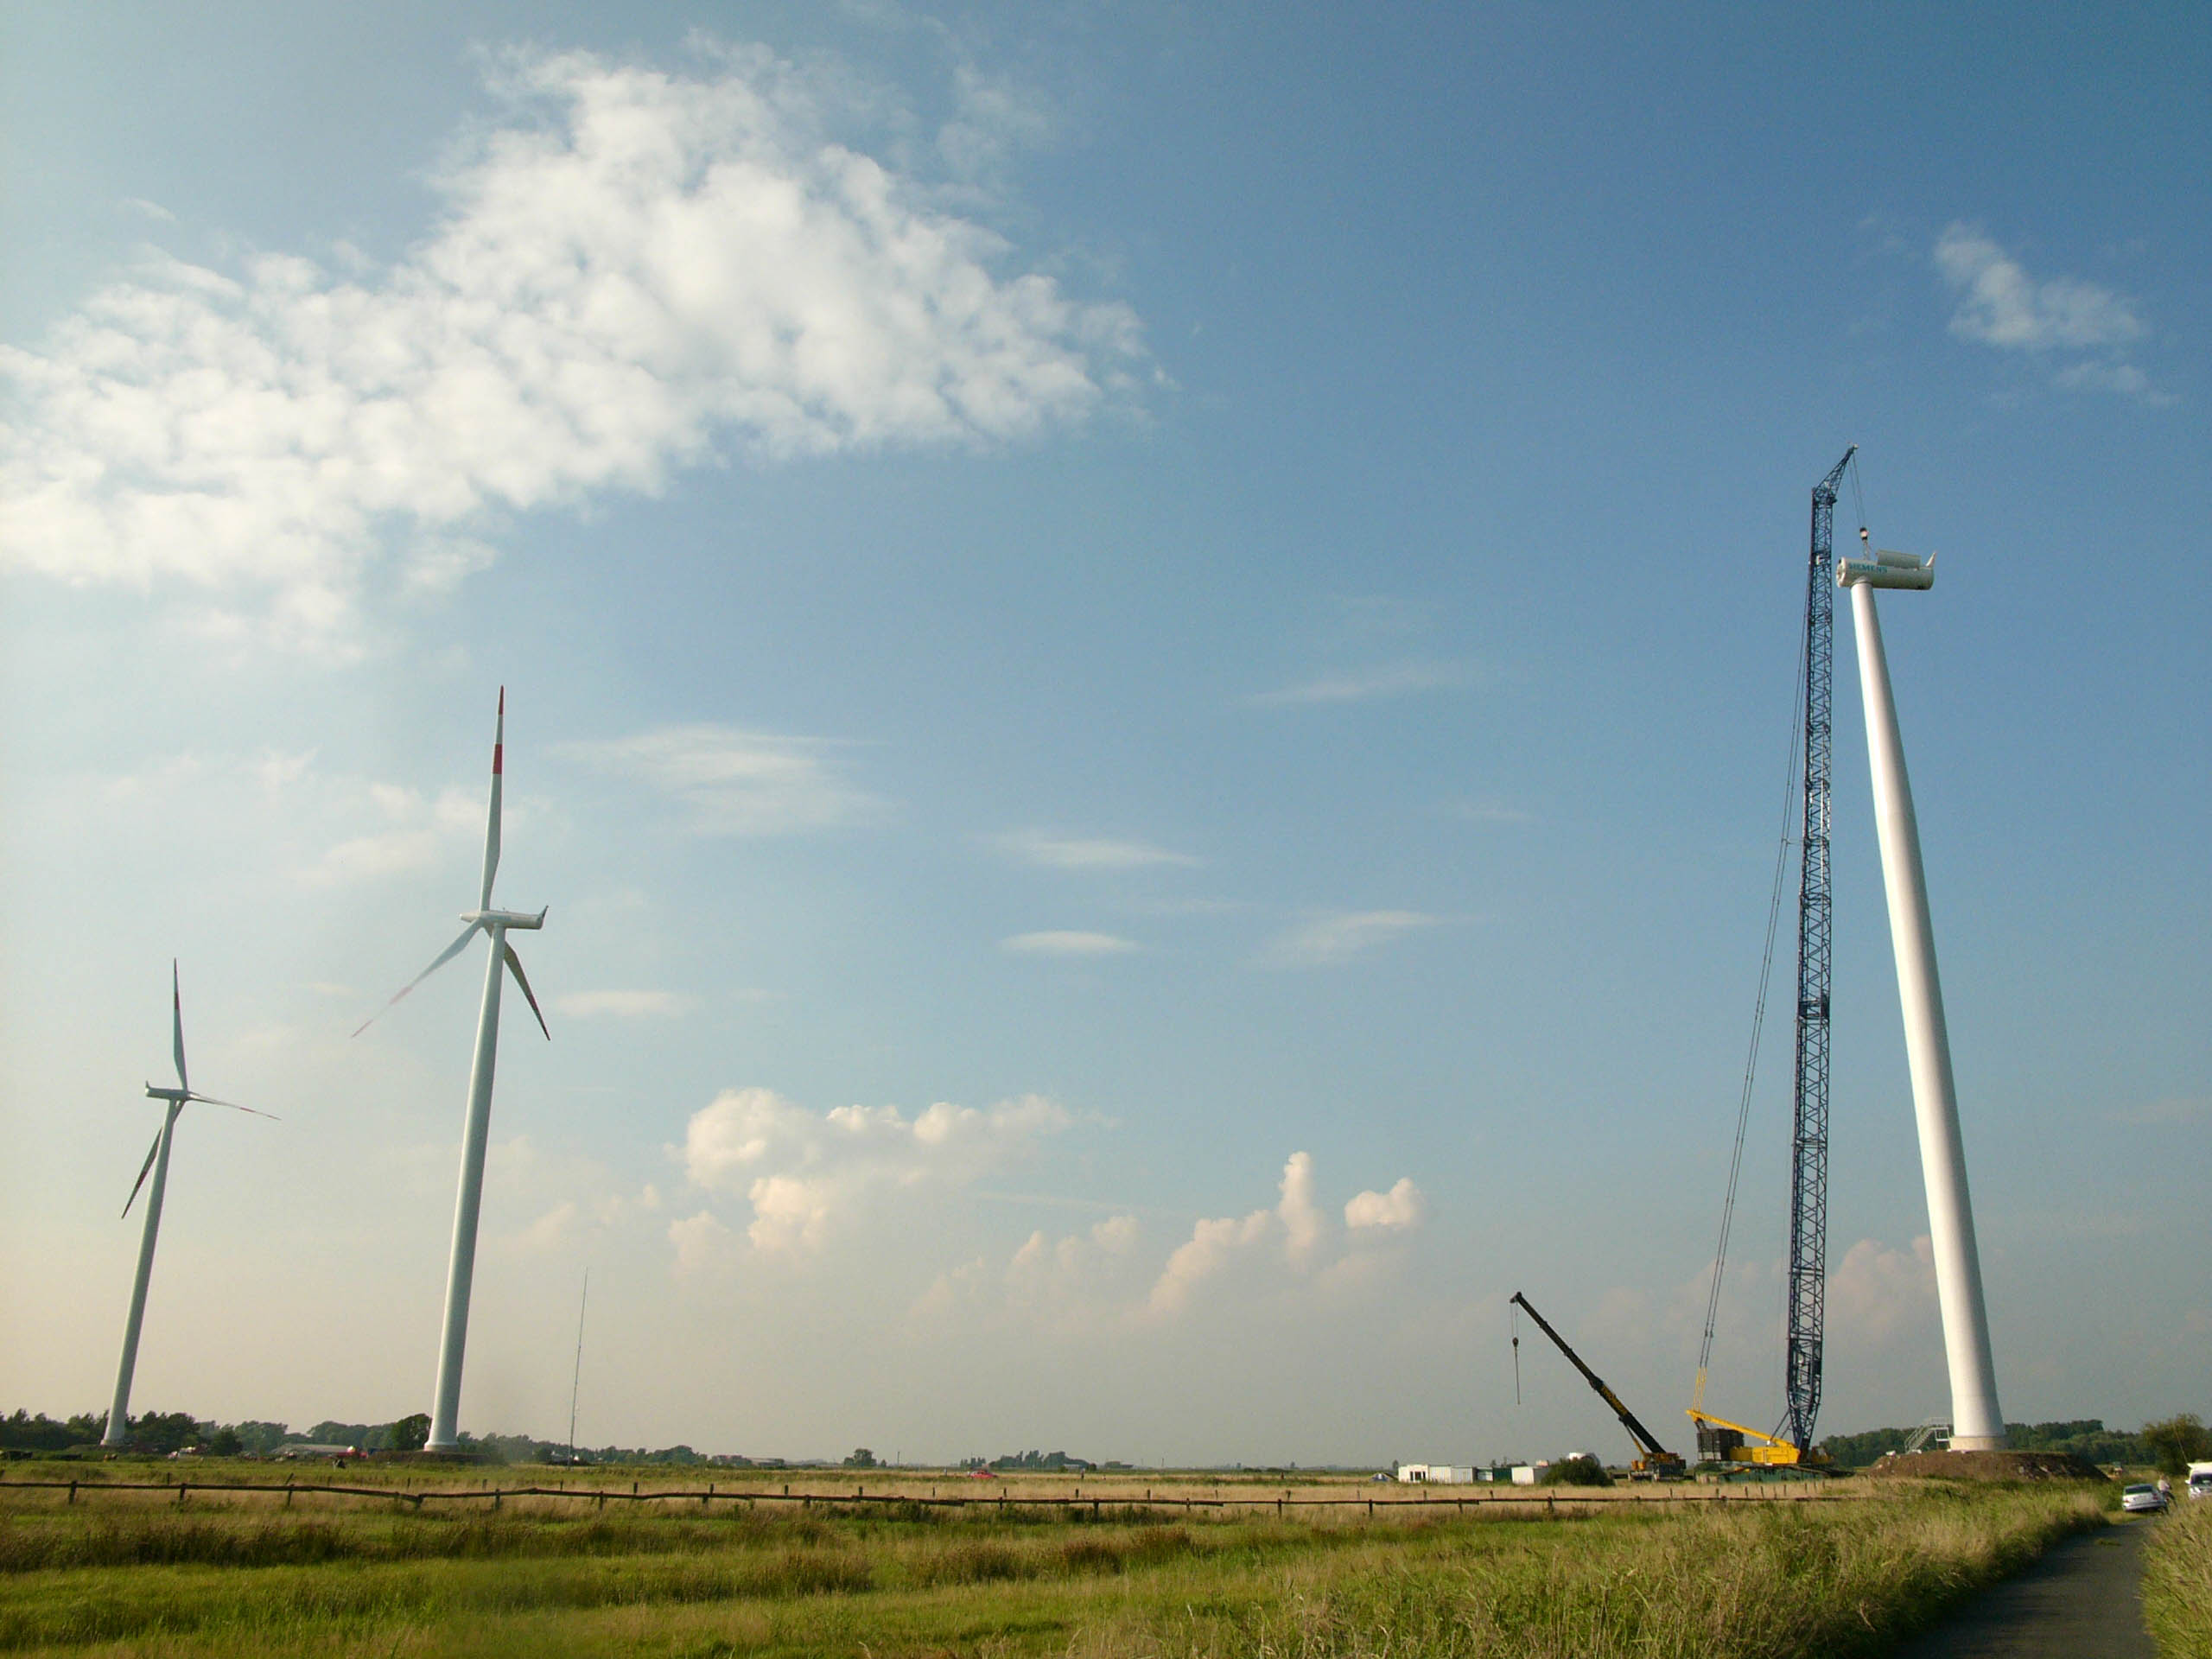 File:Wind turbine-4 hg.jpg - Wikipedia, the free encyclopedia